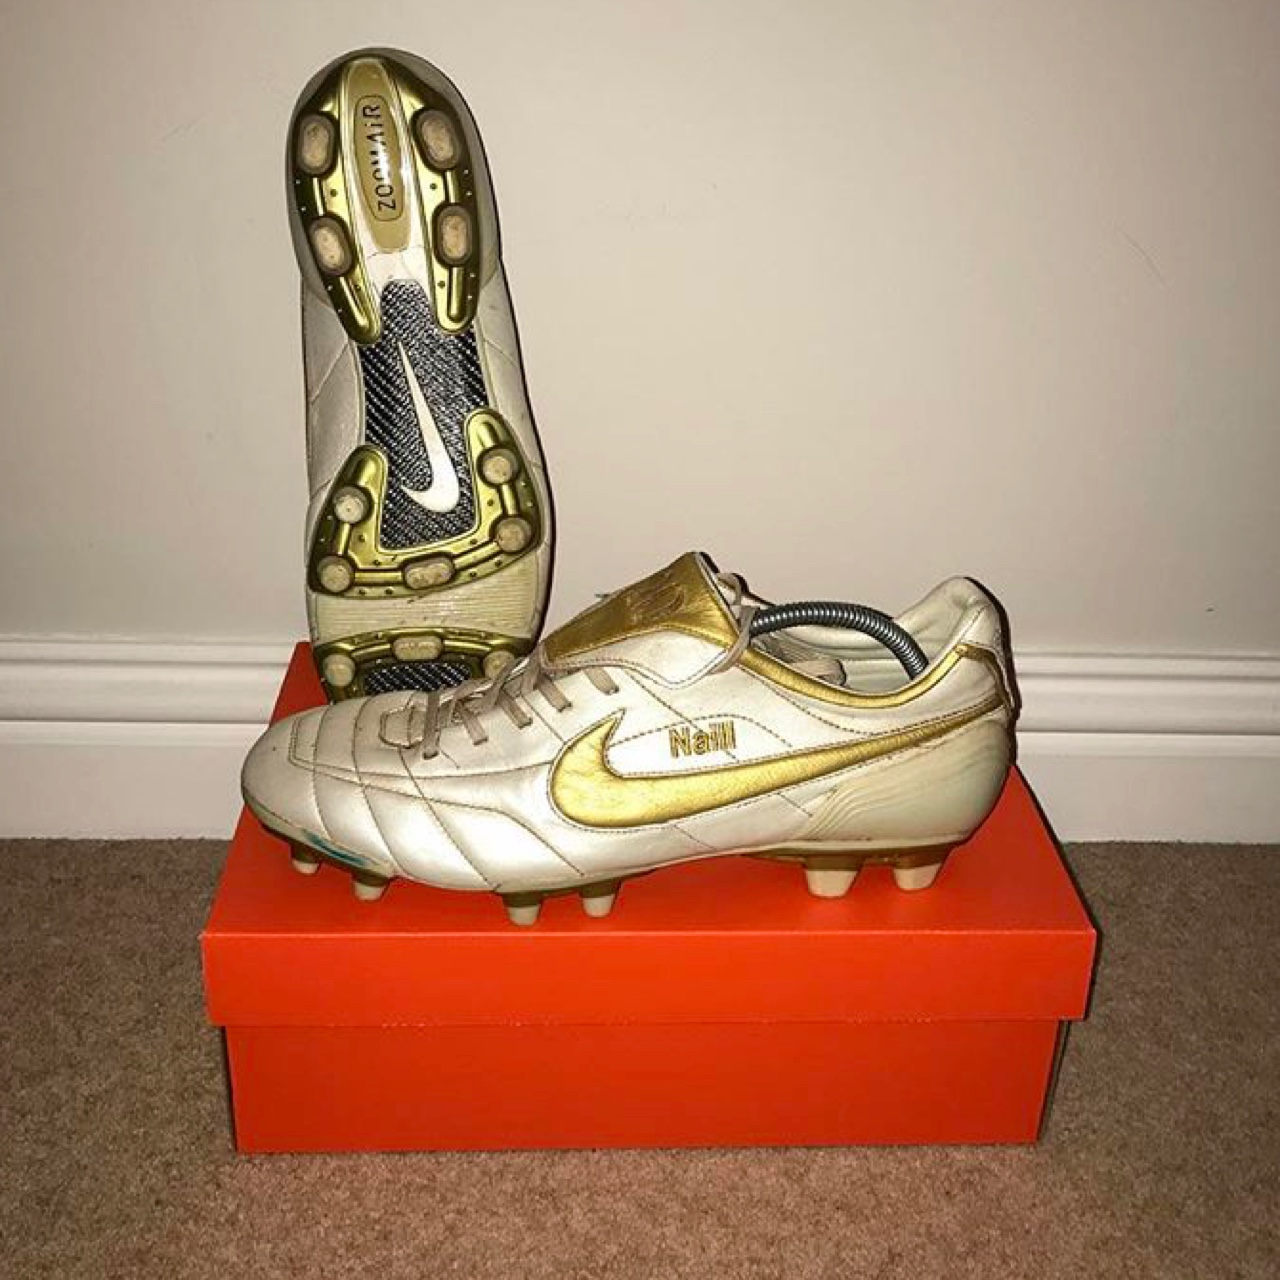 reputable site ef760 bde82 Nike tiempo air legend r10 touch of gold size 11 uk... - Depop